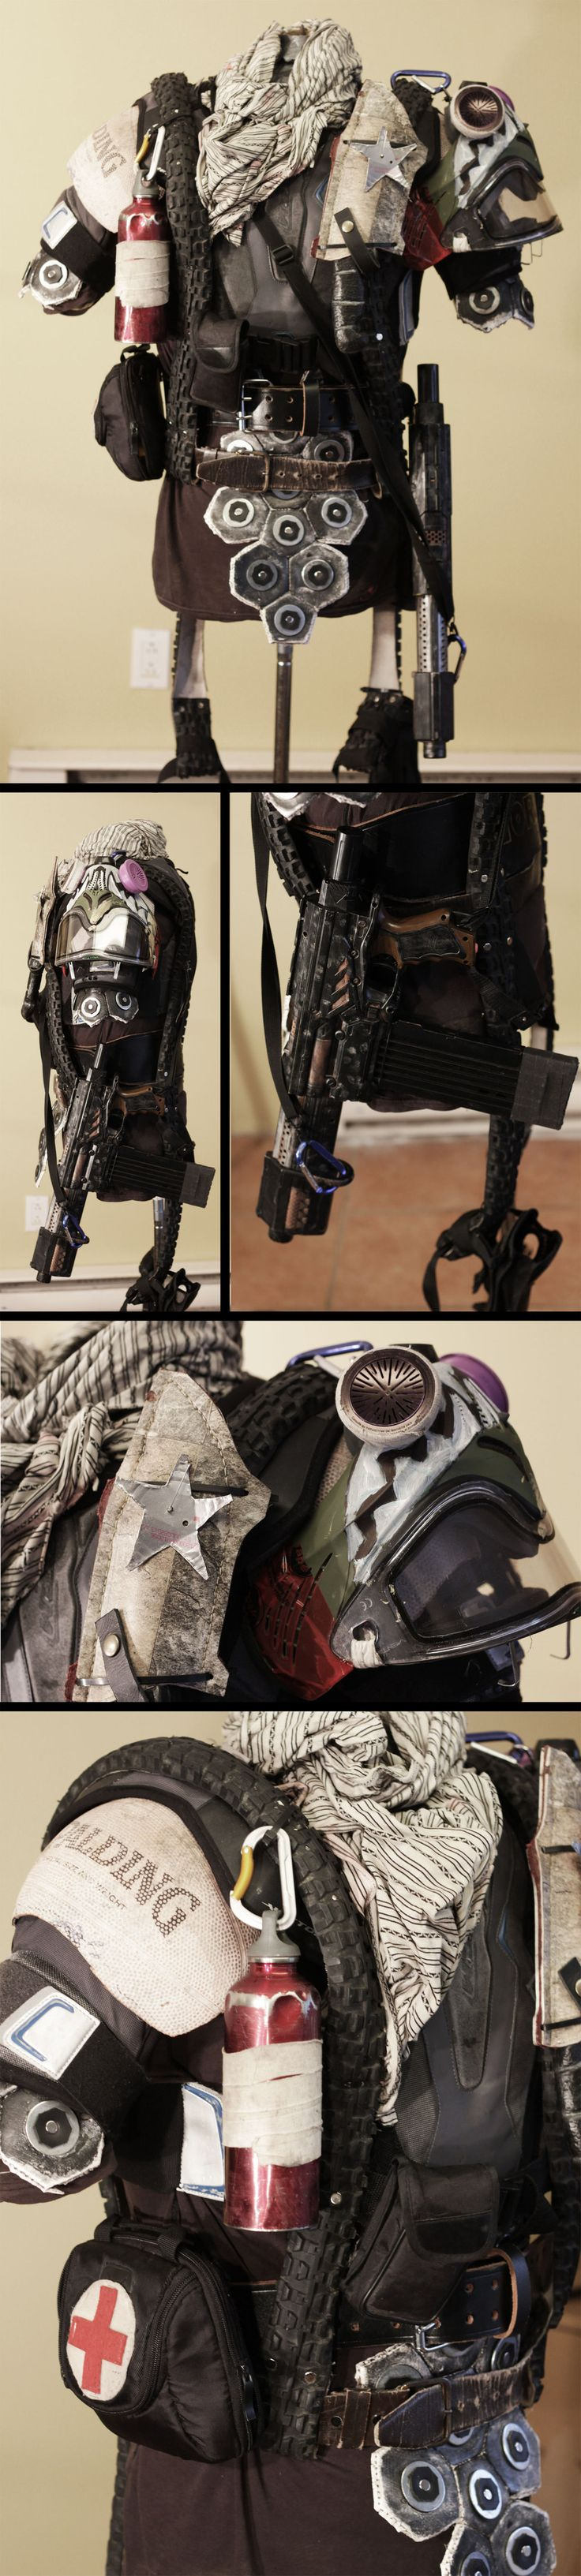 Post Apocalyptic armor - Generation Zero by NeonCowboy on deviantART